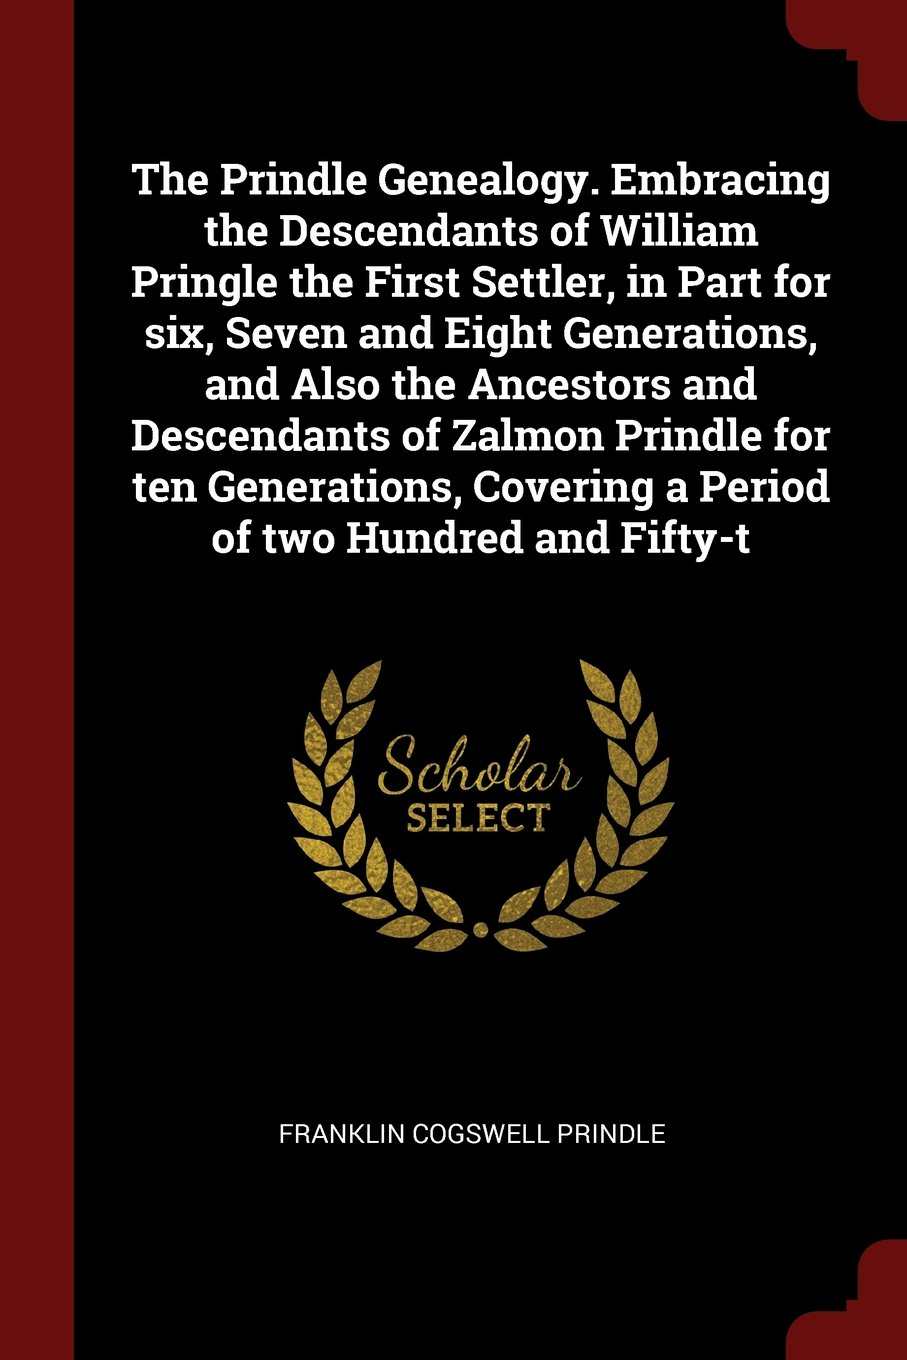 Download The Prindle Genealogy. Embracing the Descendants of William Pringle the First Settler, in Part for six, Seven and Eight Generations, and Also the ... Covering a Period of two Hundred and Fifty-t PDF